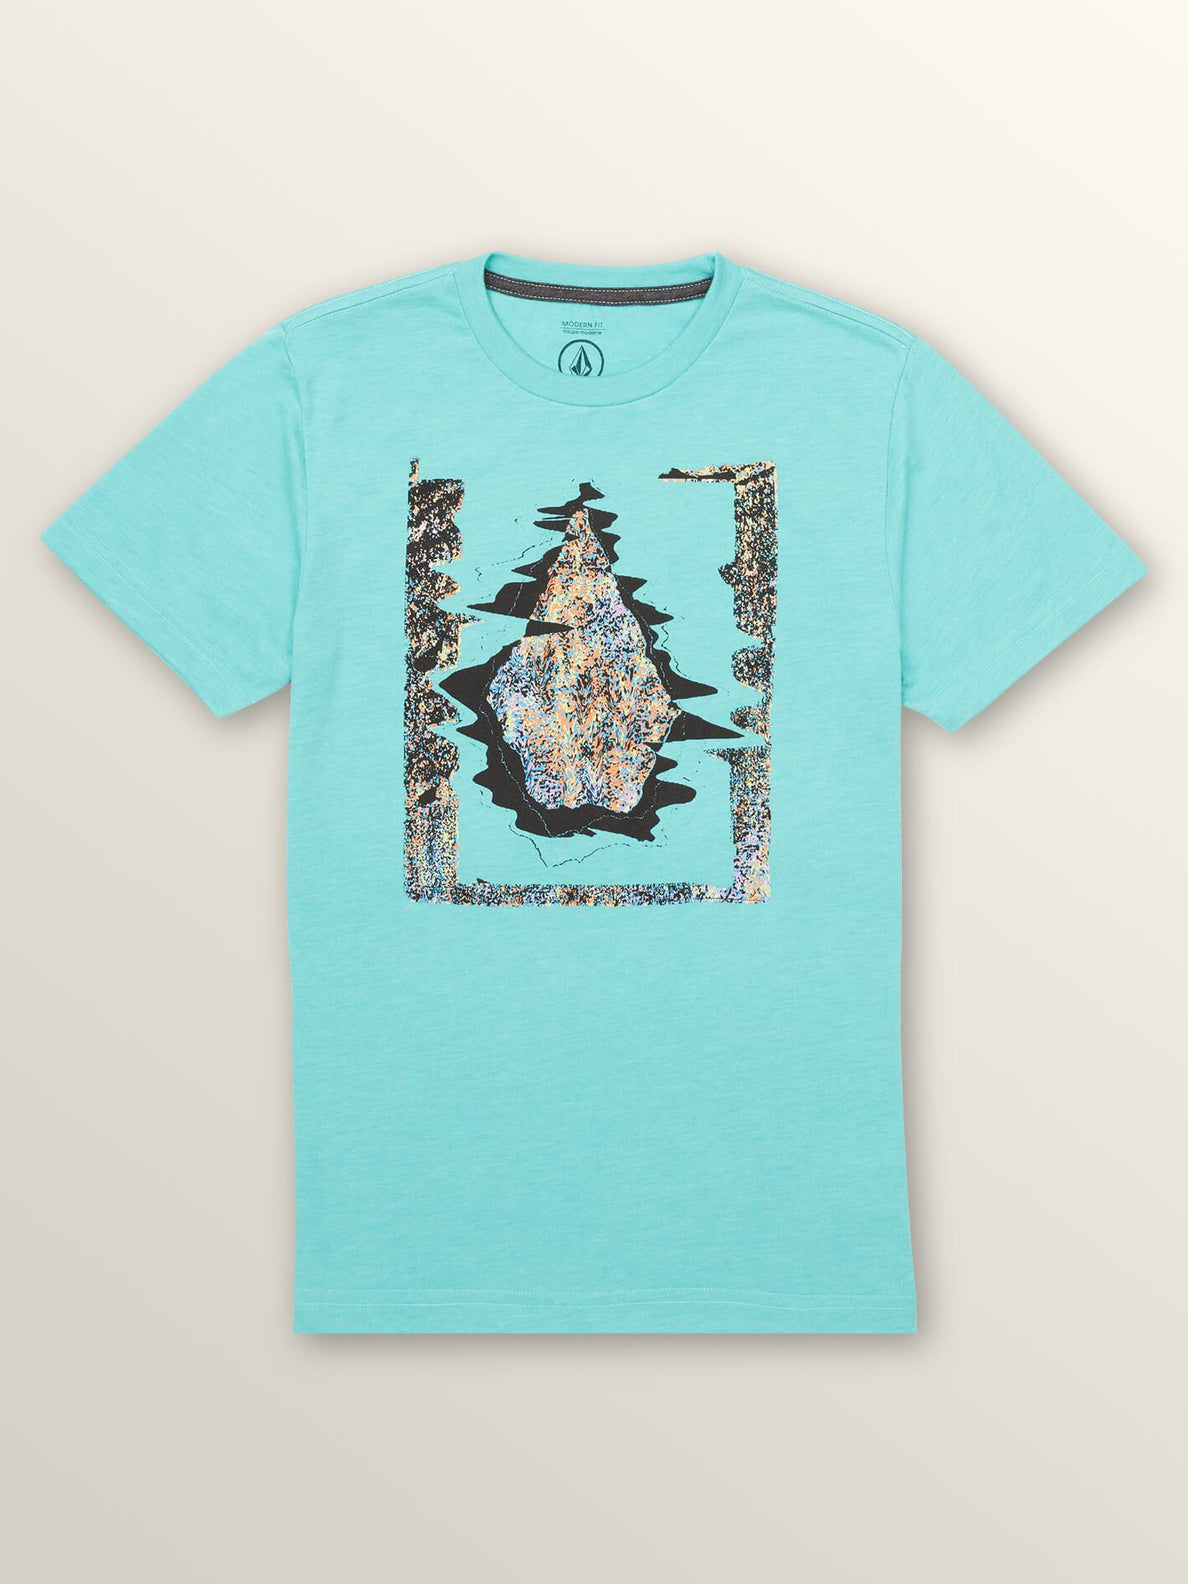 Big Boys Statiq Short Sleeve Tee In Turquoise, Front View